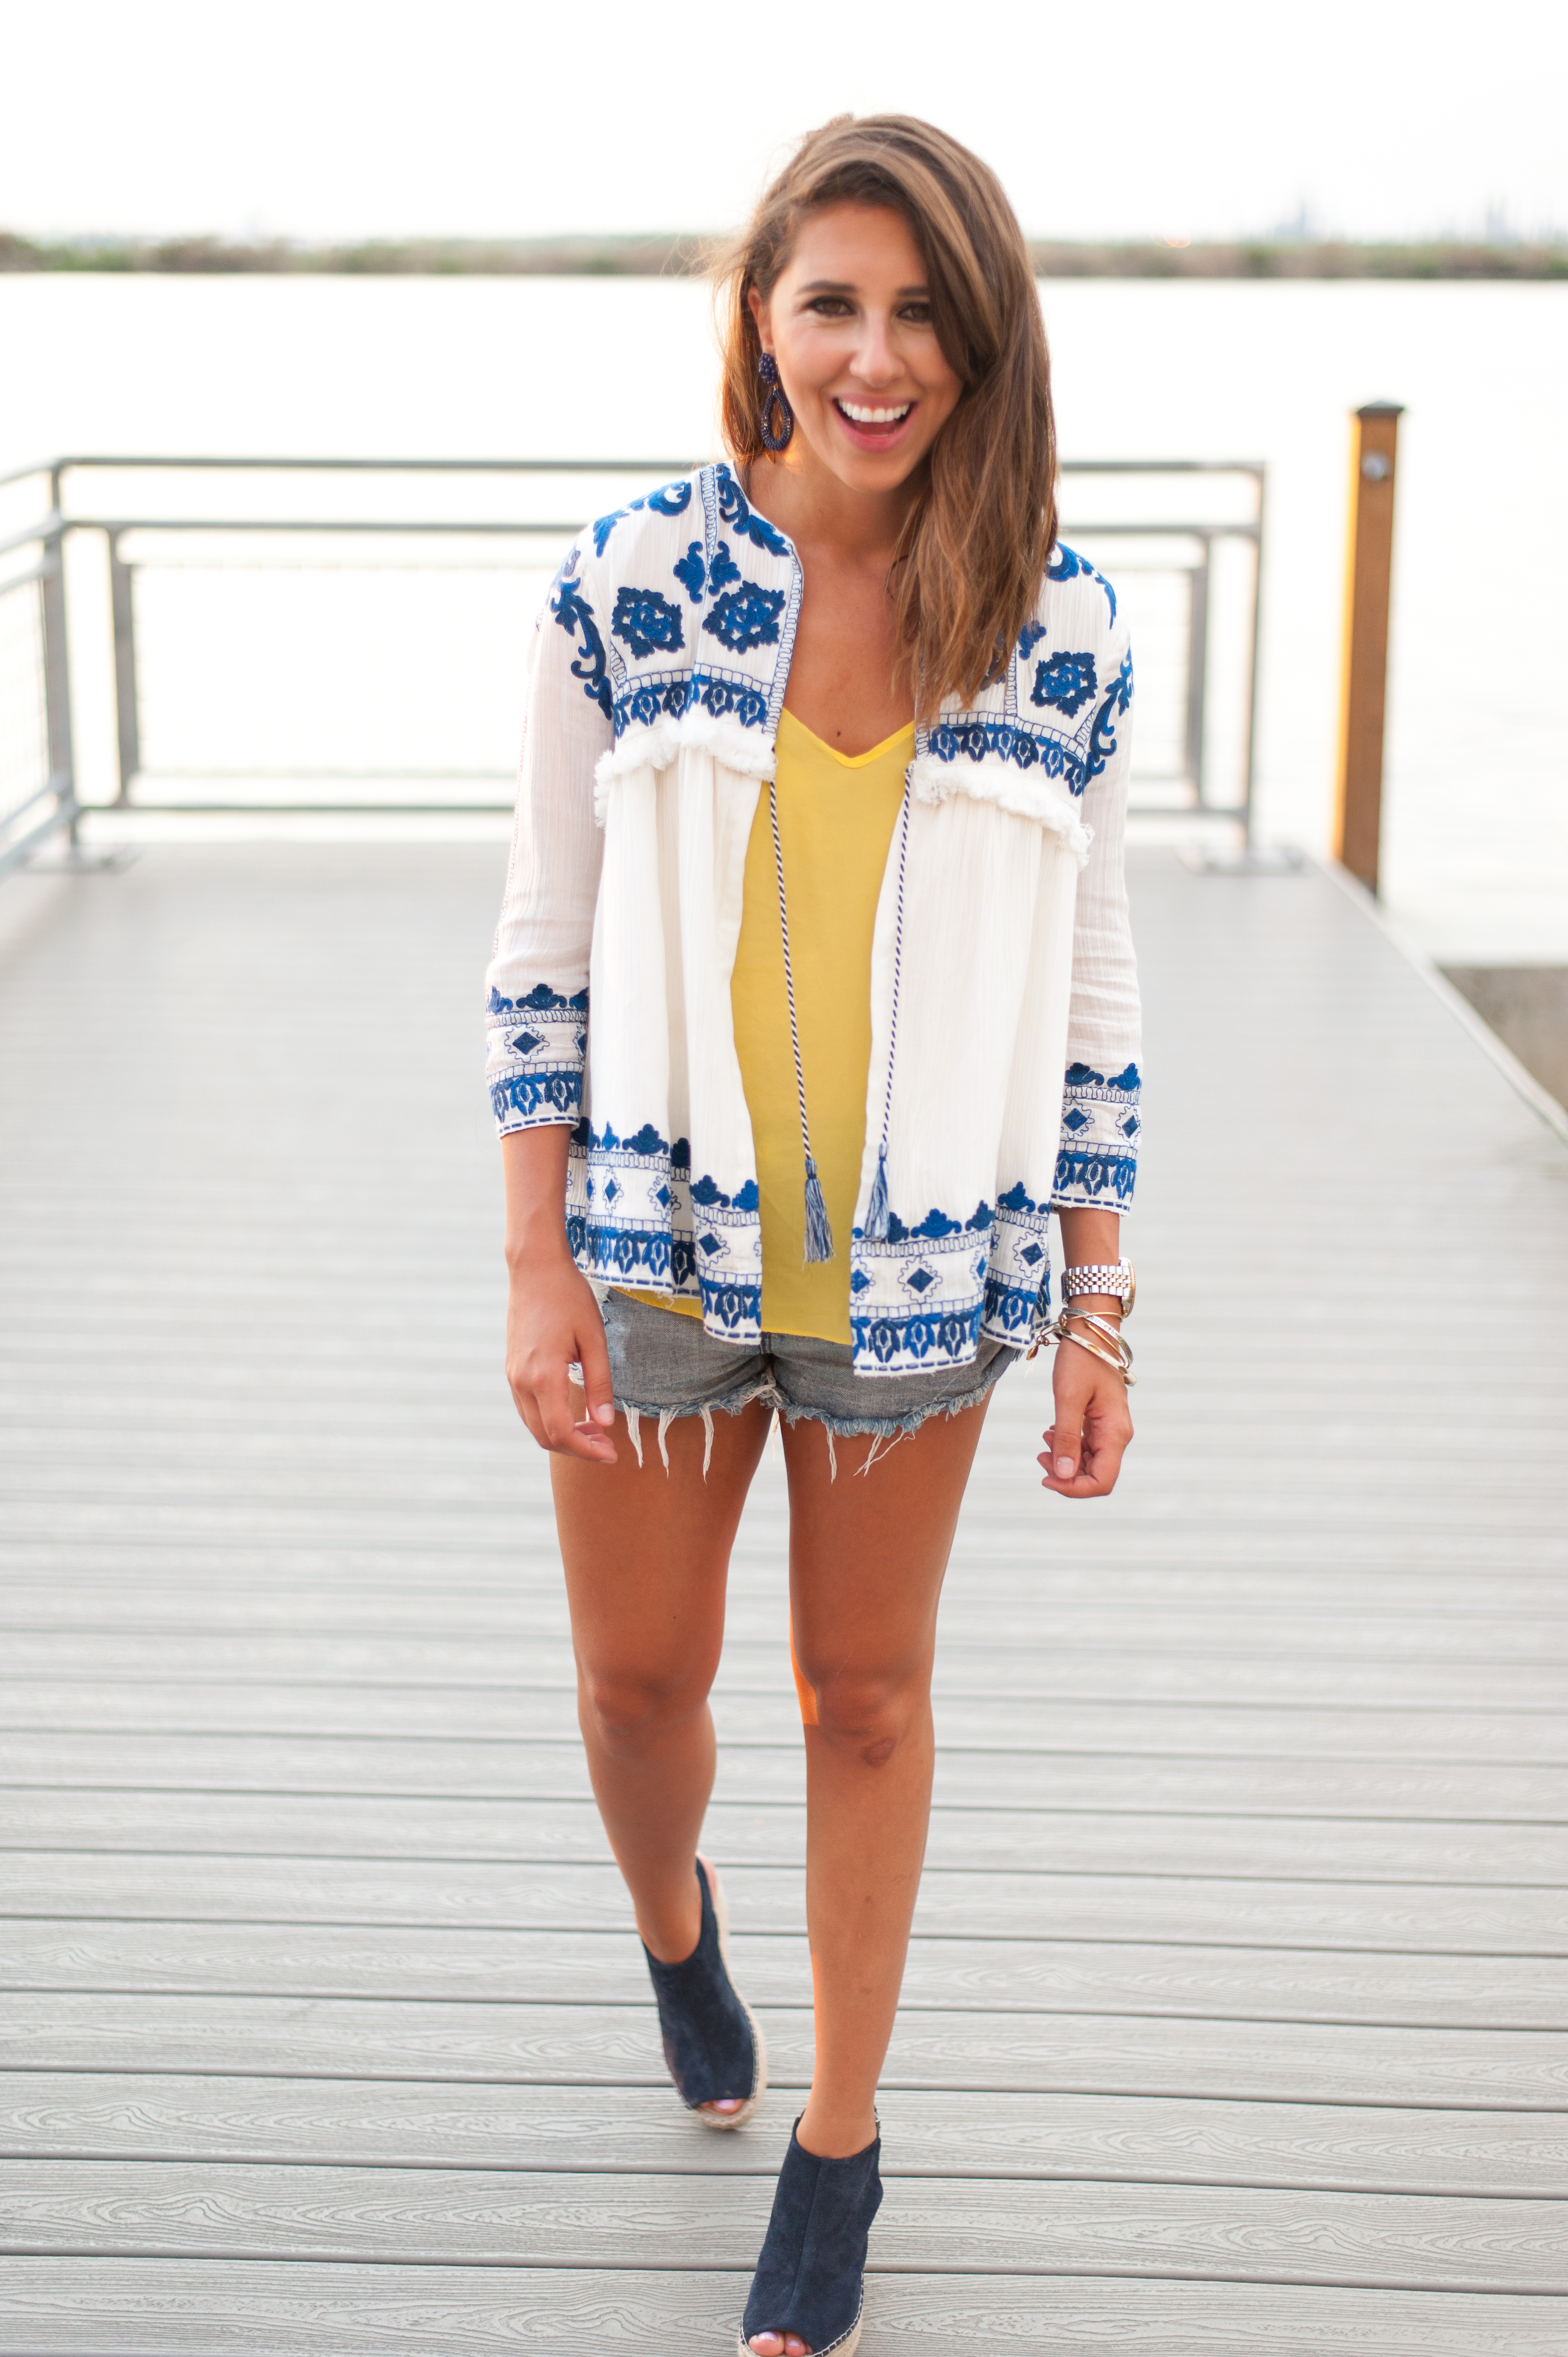 Dress Up Buttercup | Houston Fashion Blog - Dede Raad | Boho Blue & Yellow